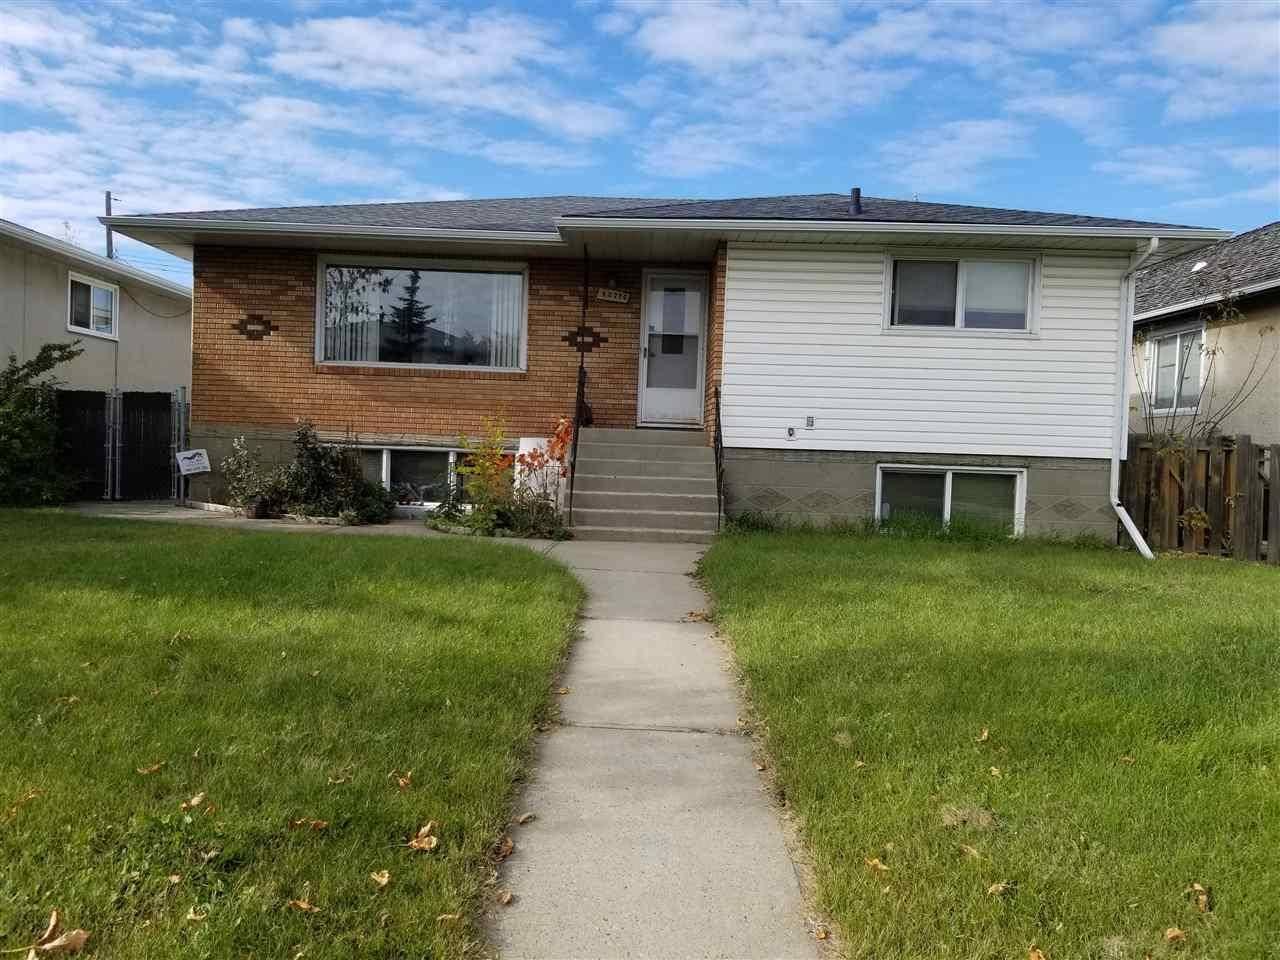 Townhouse for sale at 12712 94 St Nw Edmonton Alberta - MLS: E4176297